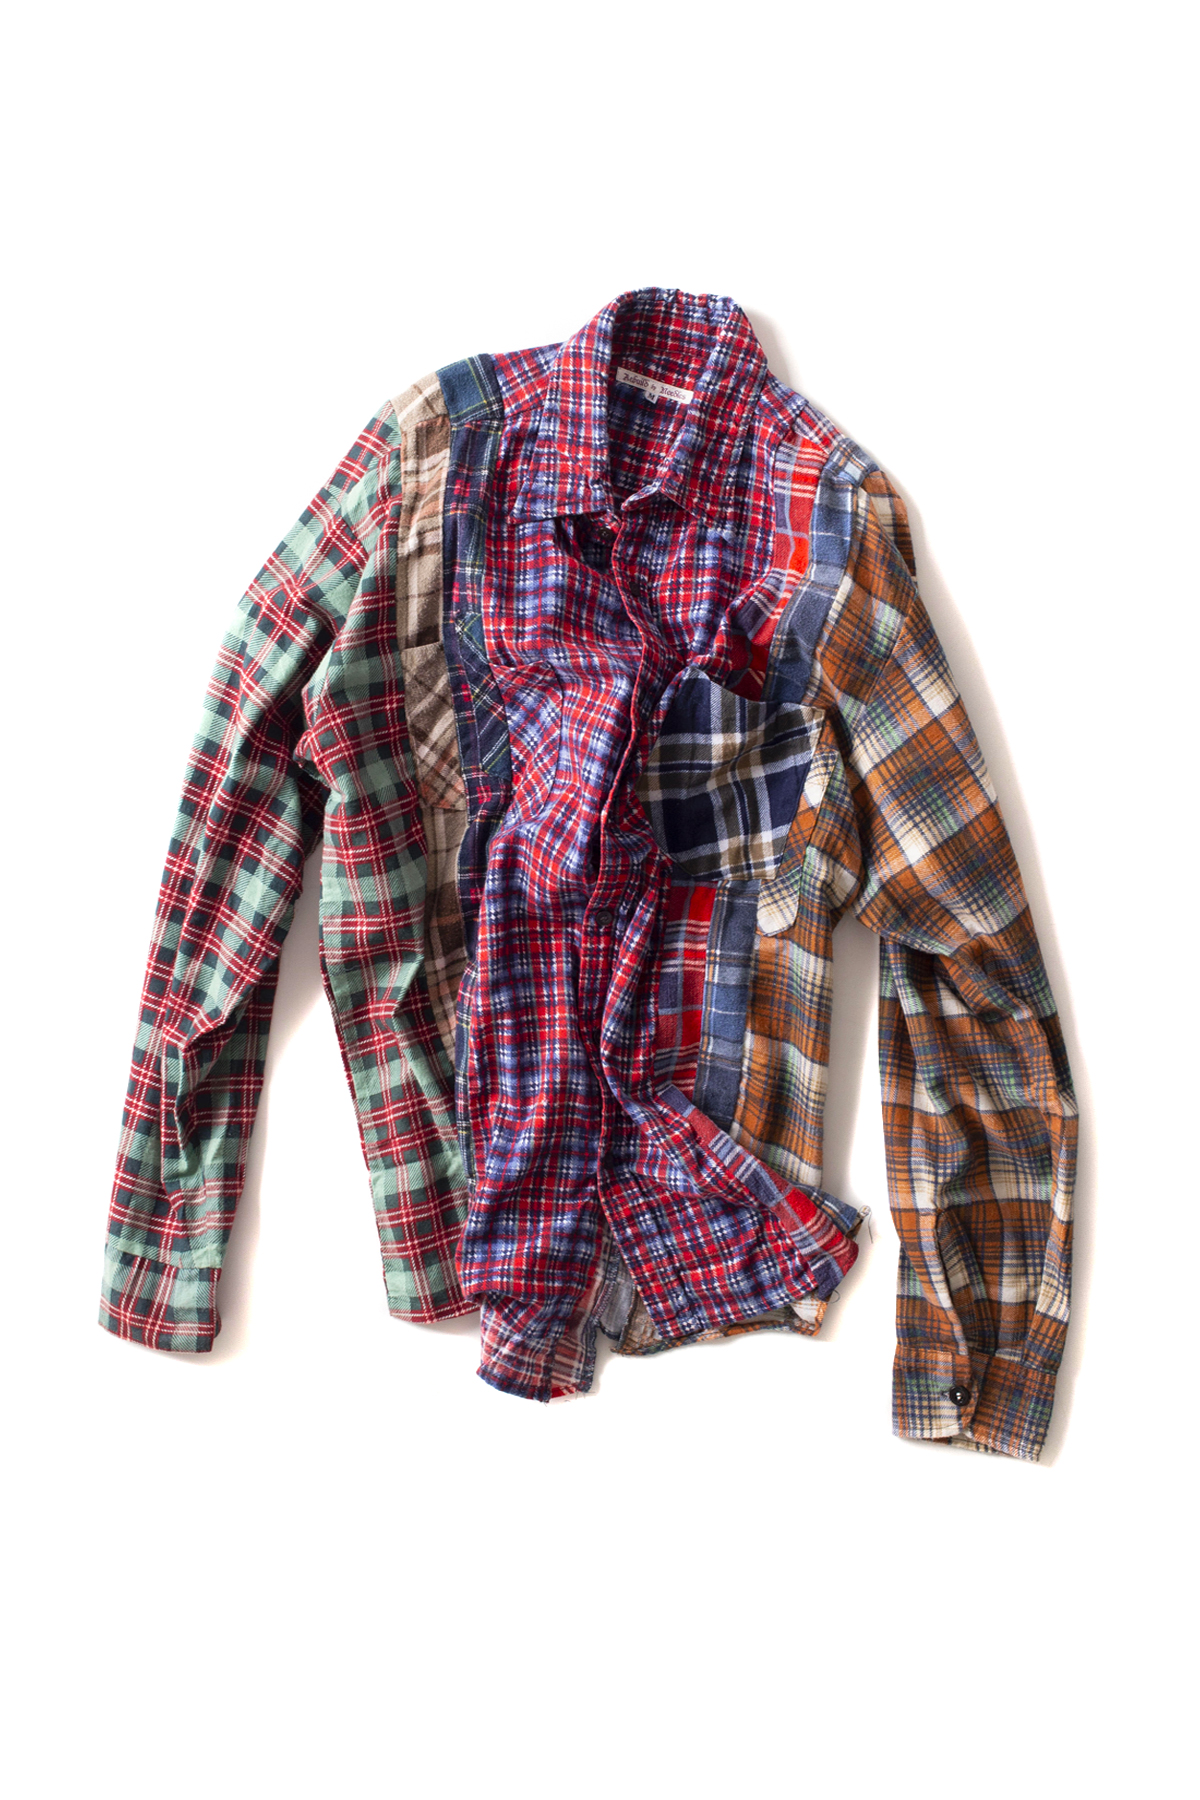 NEEDLES : Rebuild By NEEDLES 7Cuts Flannel Shirts (M-E)